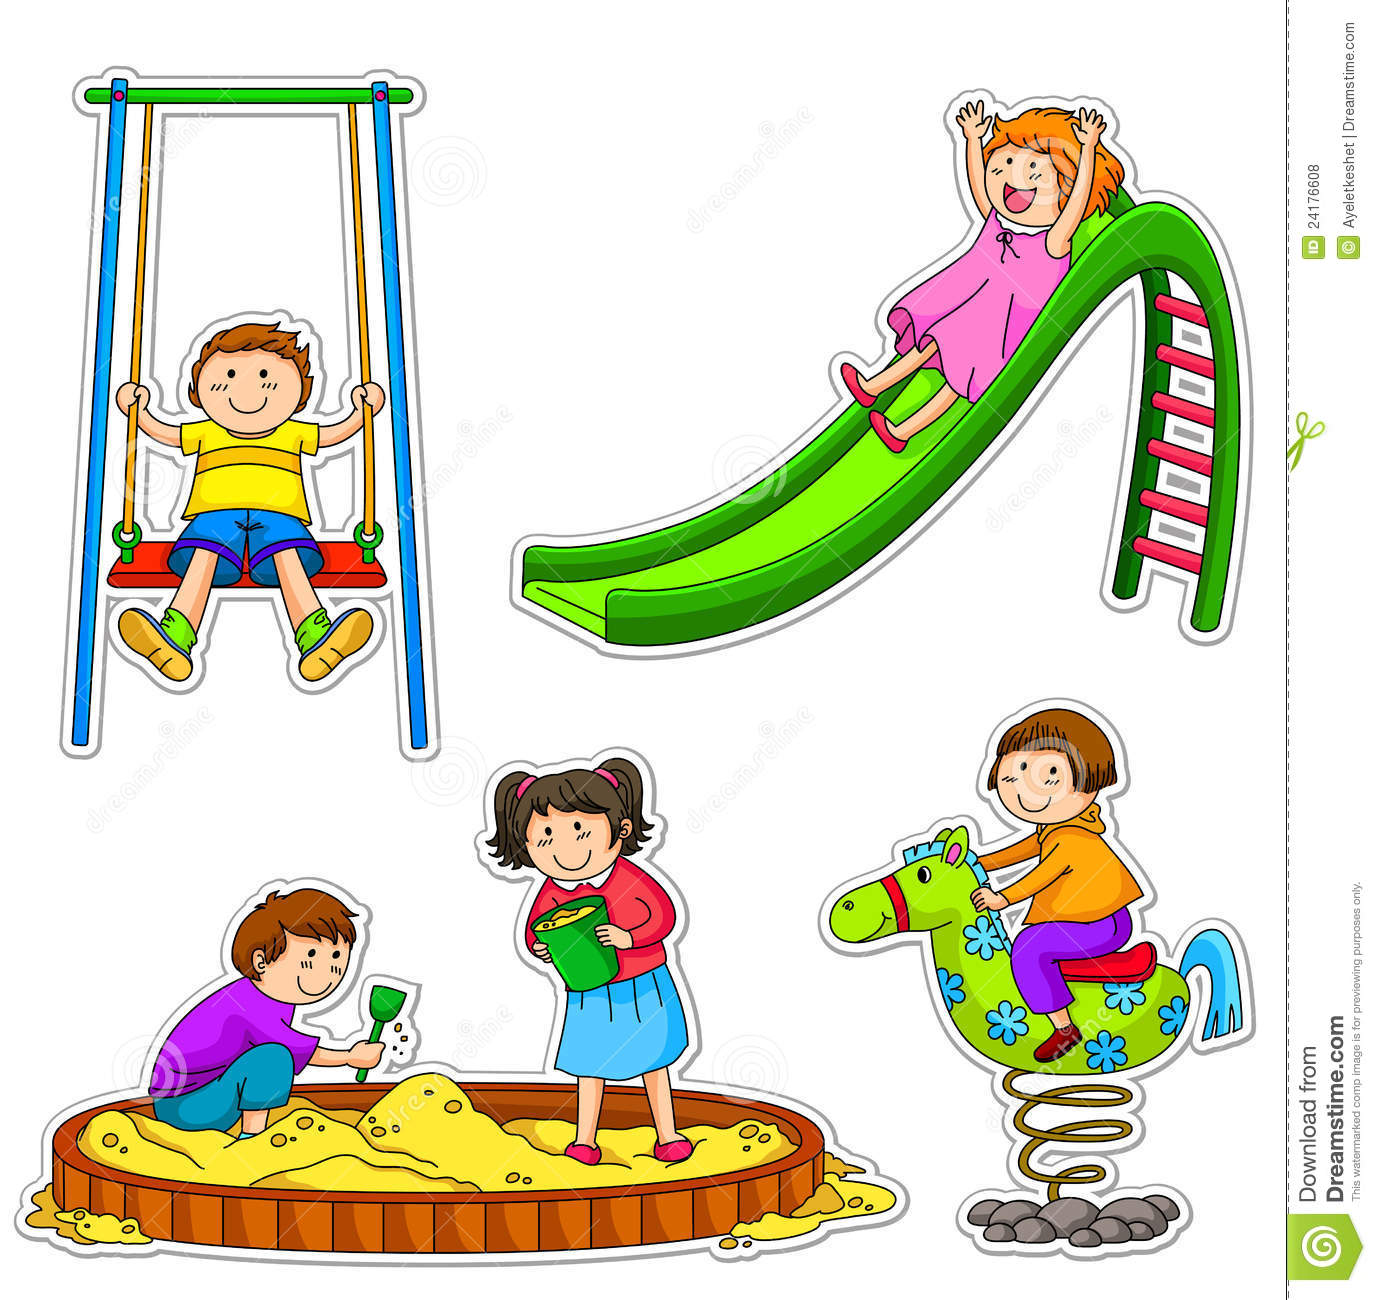 playing outside clipart - Images Of Children Playing At School